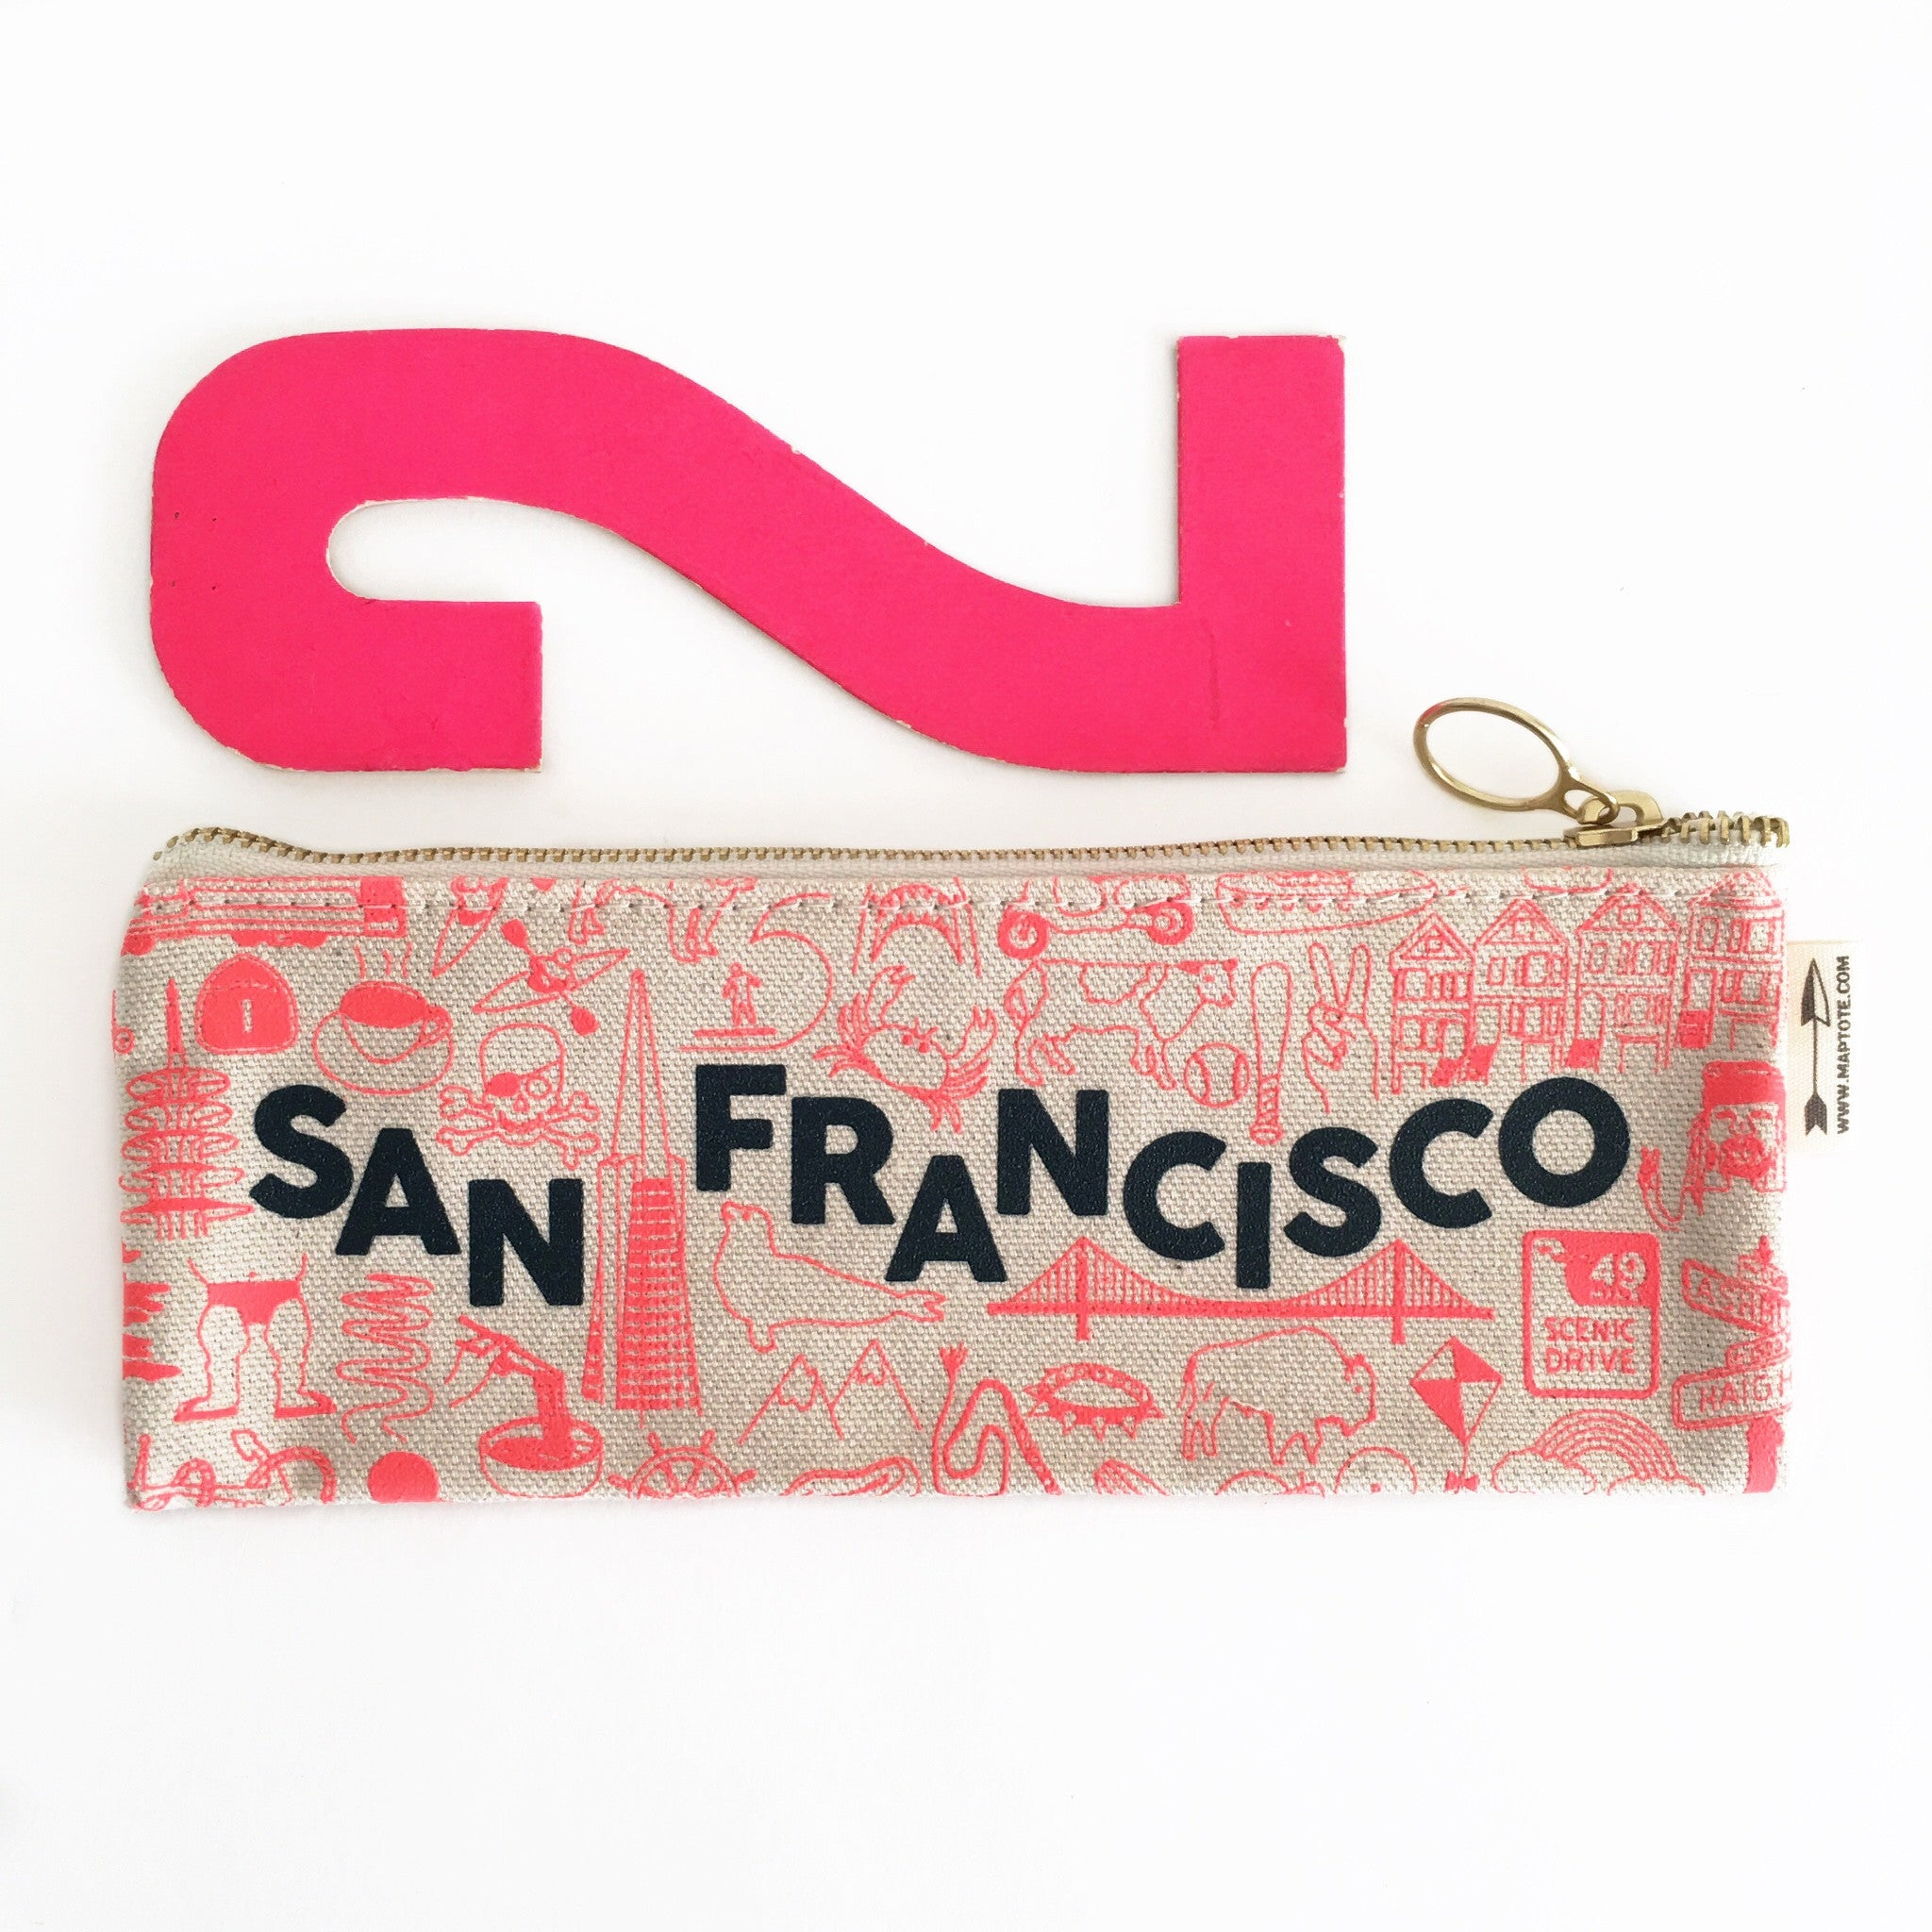 San Francisco Pencil Pouch